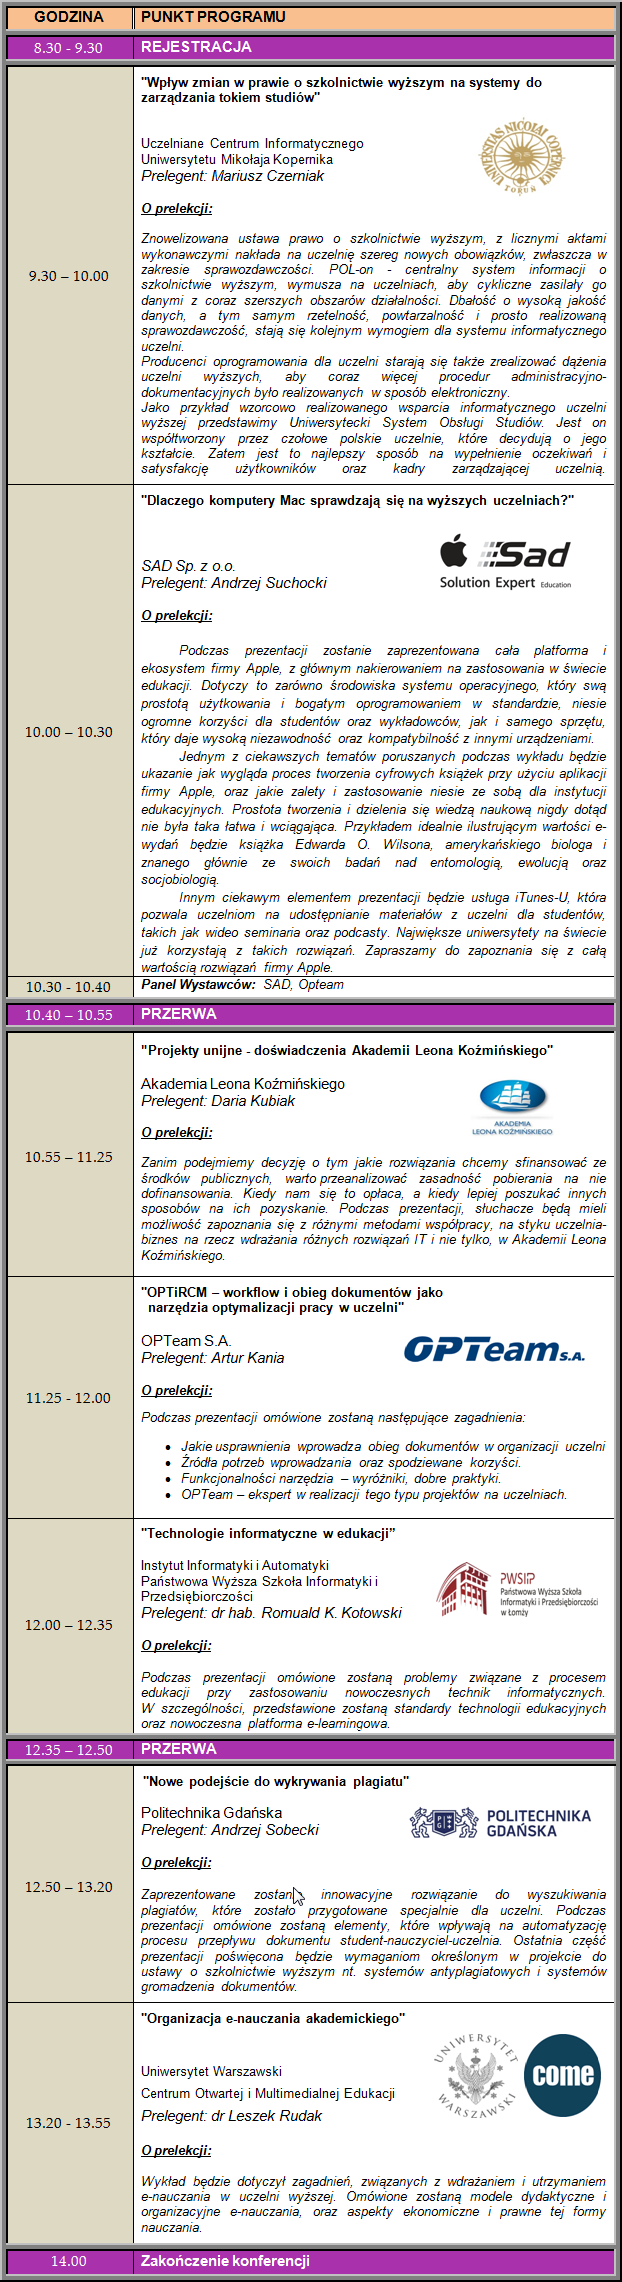 http://www.pureconferences.pl/images/agendy/agenda_27-06-2013.png